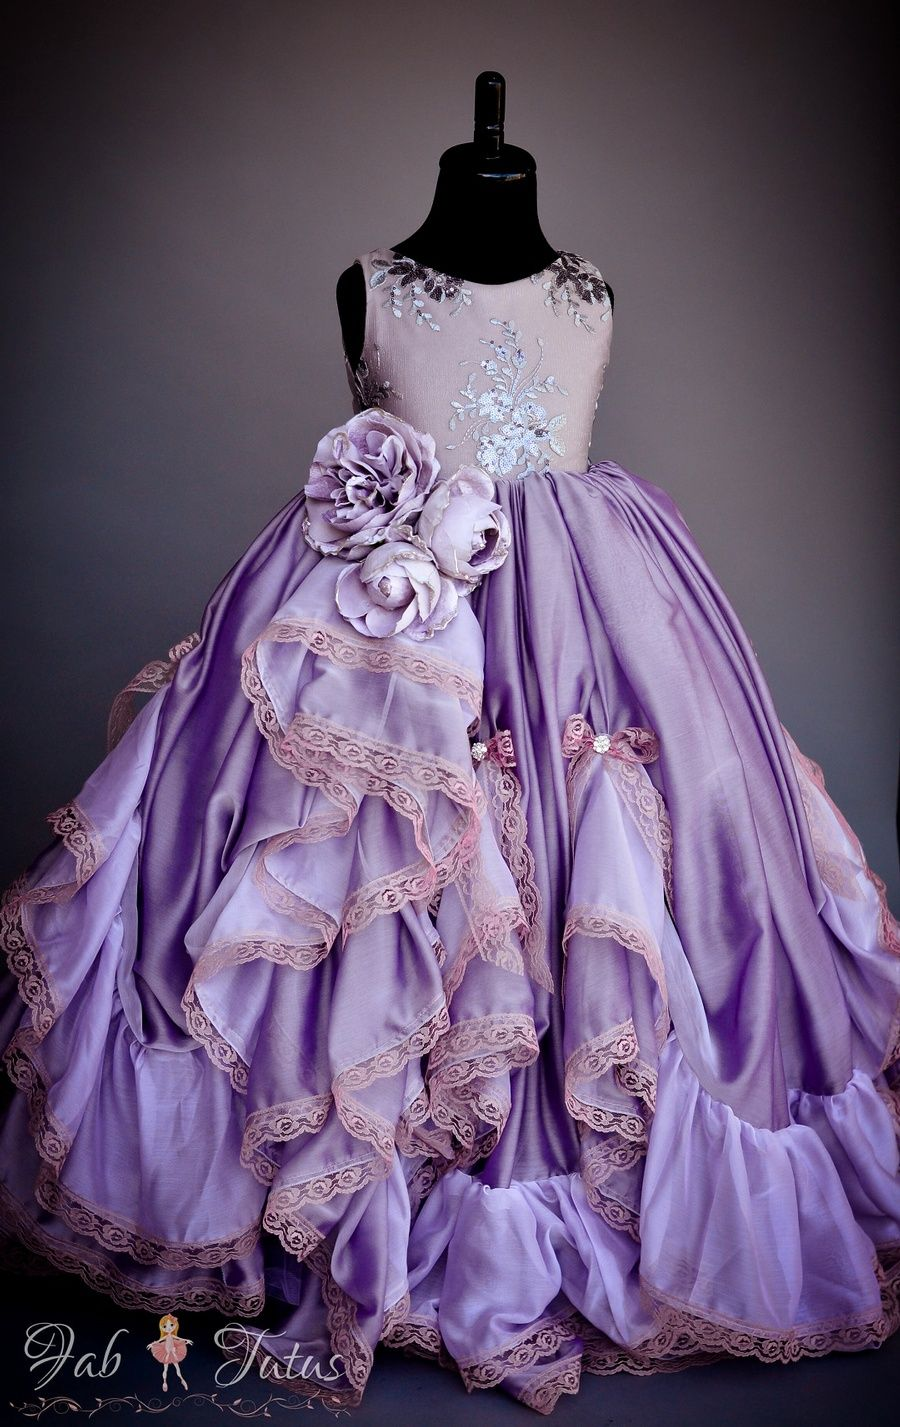 FabTutus | Products | Flower Girl Dress | "|900|1427|?|en|2|74e6e4bb705d54be956fa4bc1a980549|False|UNLIKELY|0.29837843775749207